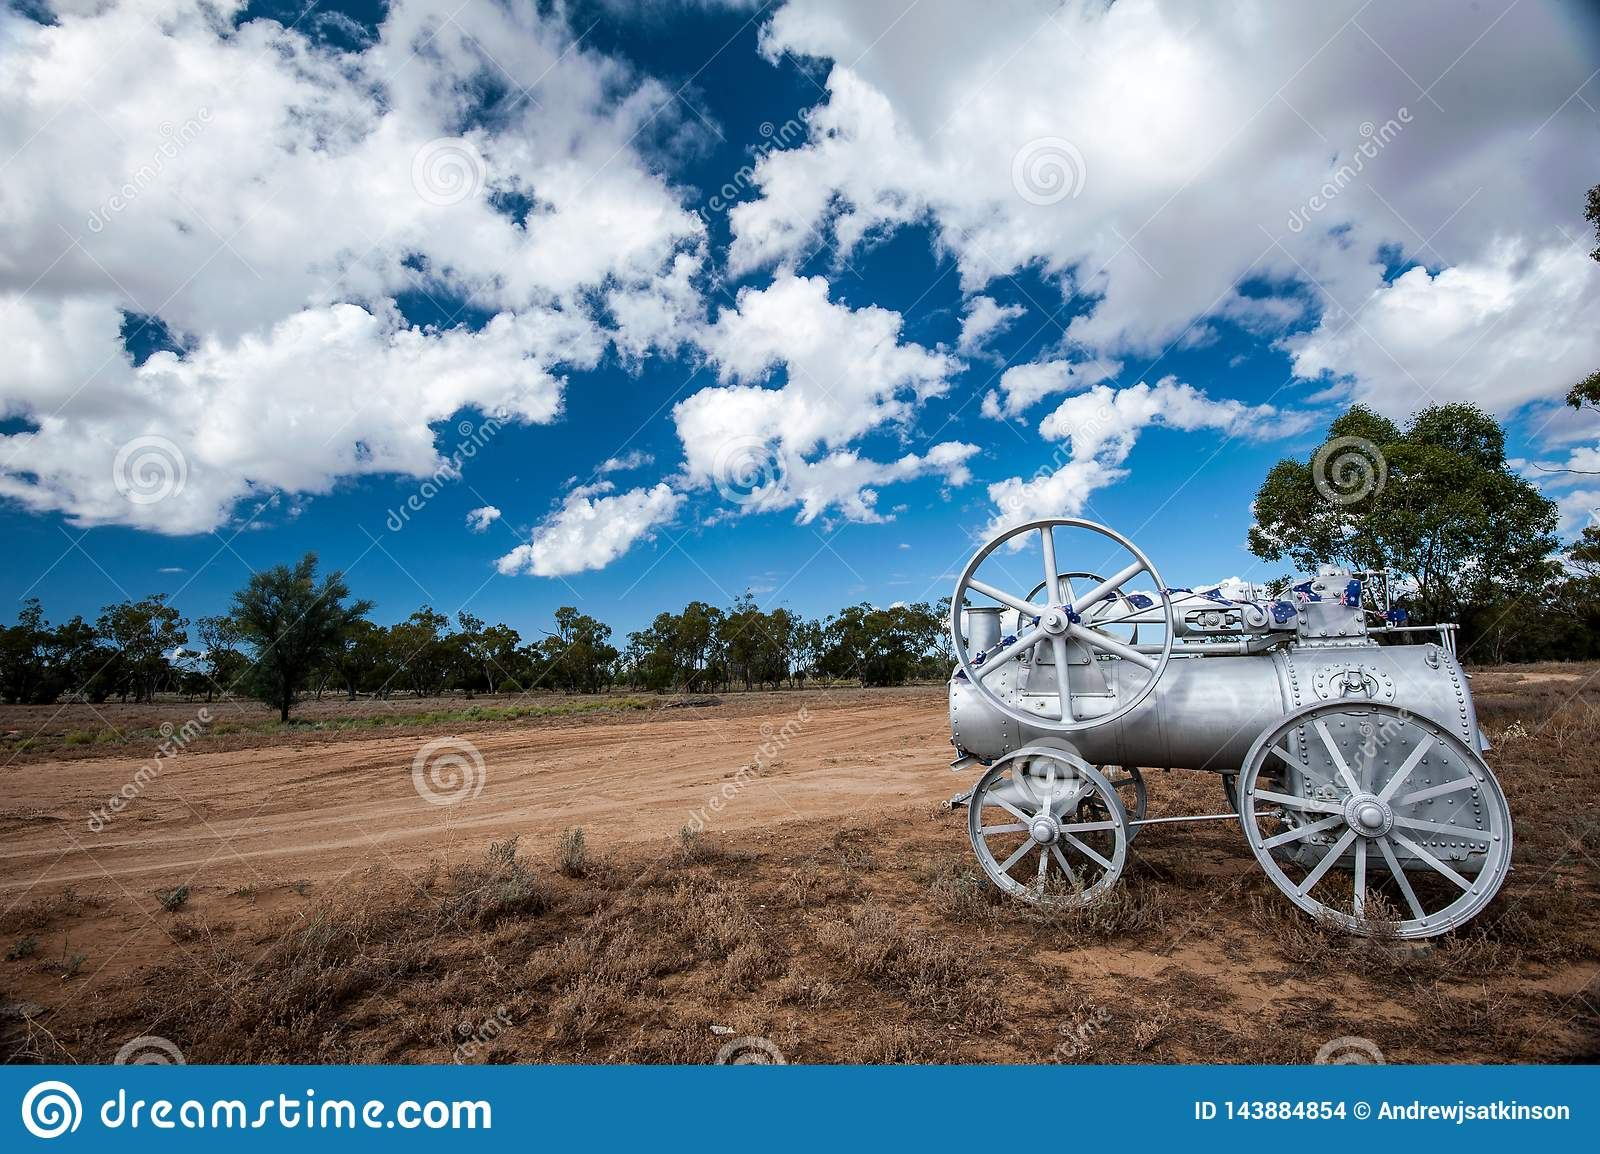 Steam engine at the entrance to an outback sheep and cattle station in Australia